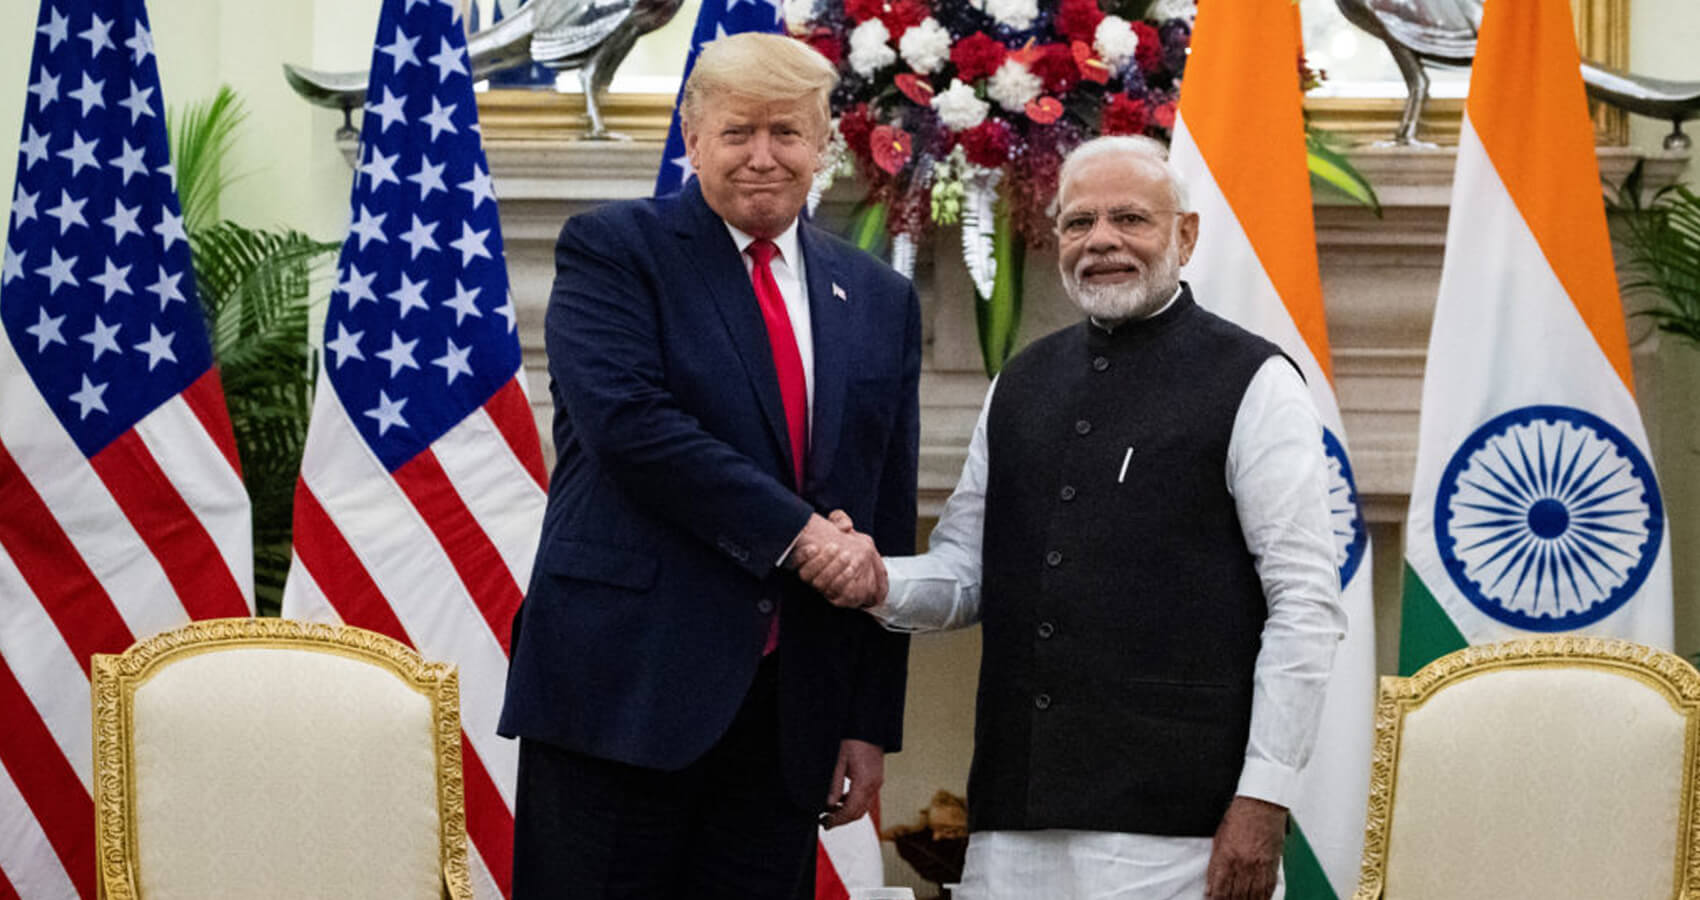 Trump Honours Modi With Legion of Merit Award